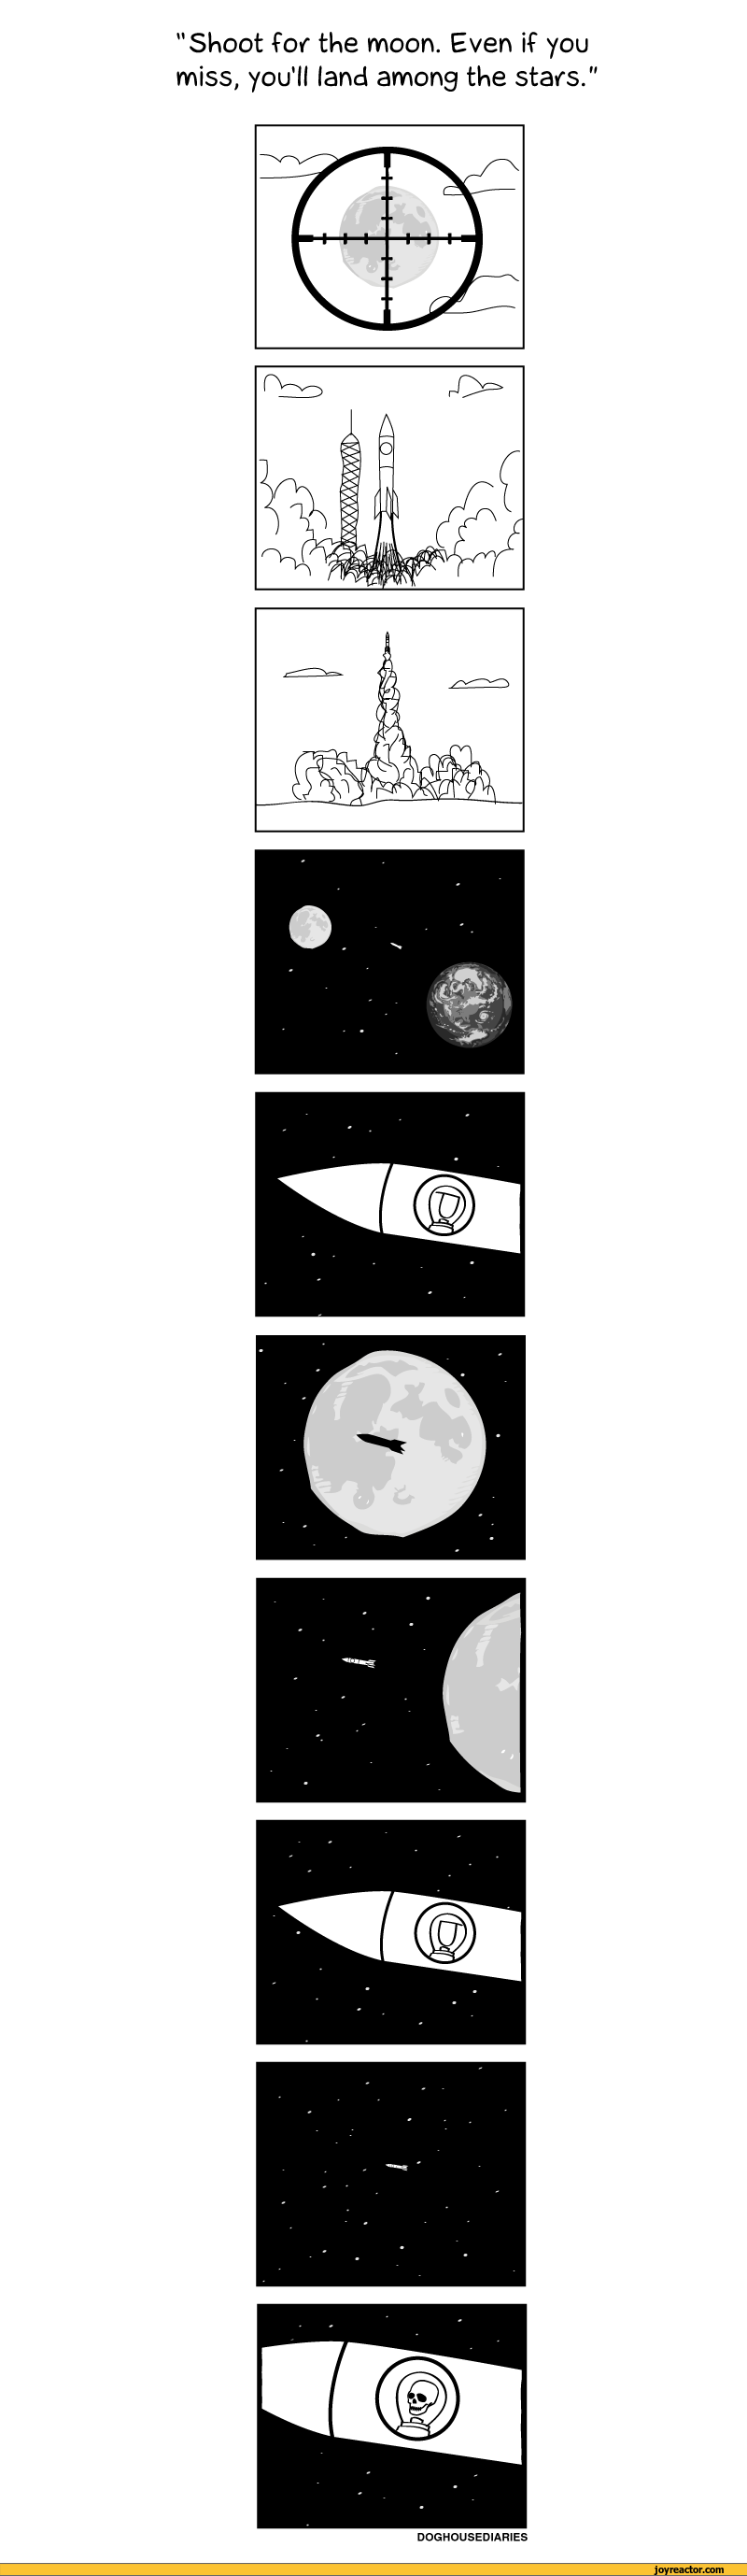 comics-astronaut-moon-shot-842961